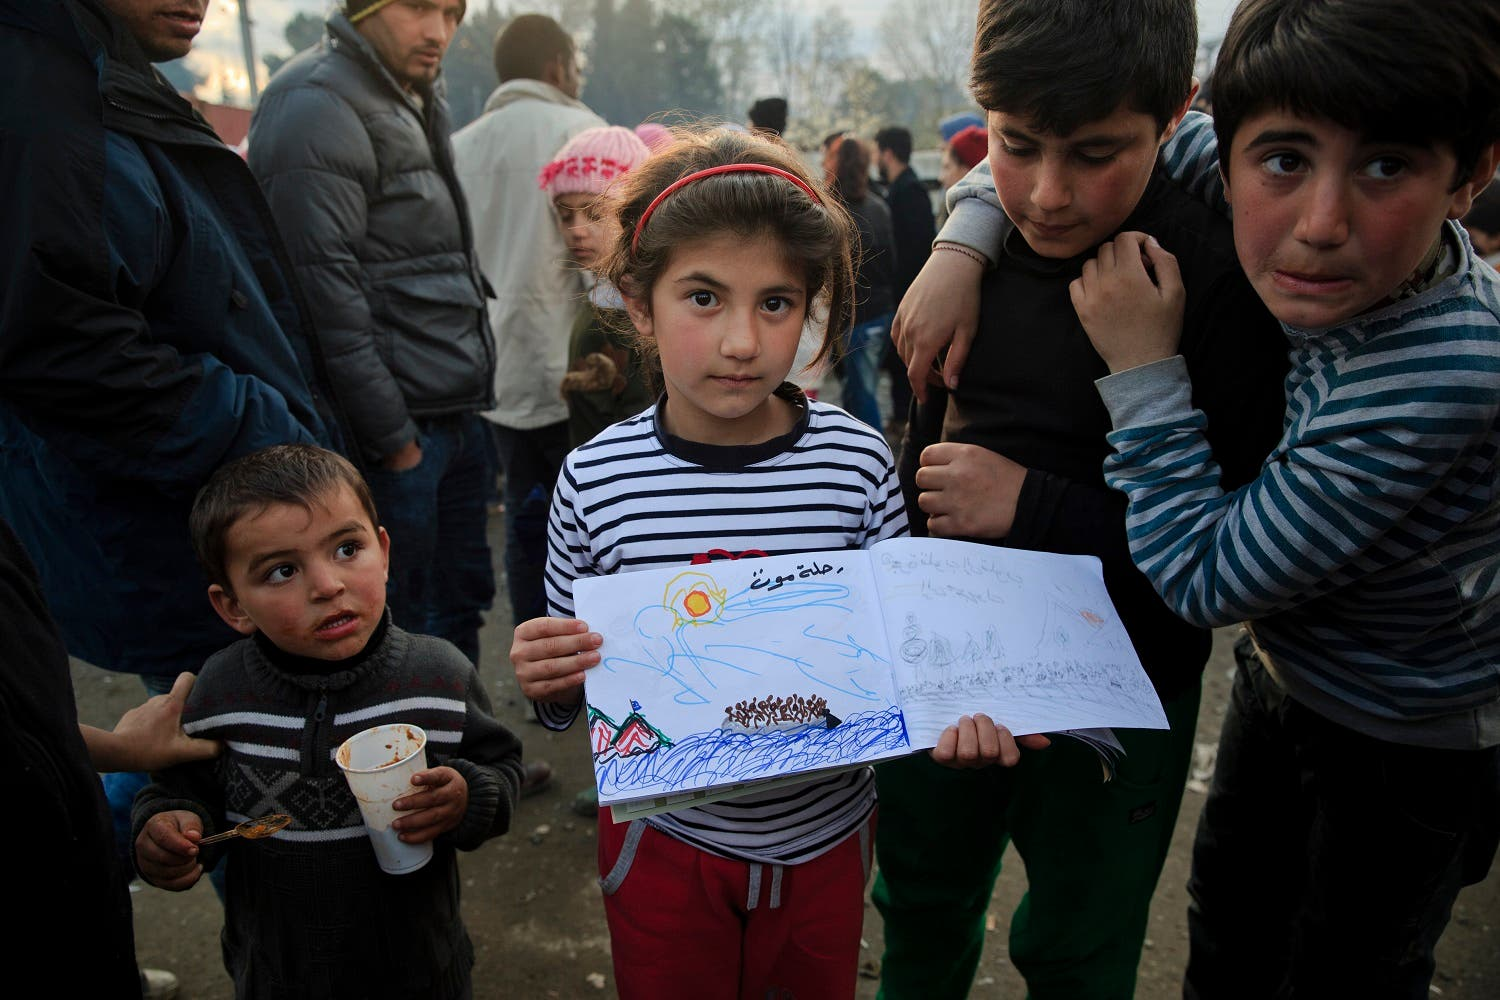 Shaharzad Hassan, 8 year-old from the Syrian city of Aleppo poses with a drawing she made at the northern Greek border station of Idomeni, Friday, March 11, 2016. At an overcrowded refugee camp on the Greek-Macedonian border, 8-year-old Shaharzad Hassan draws pictures of the harrowing events in her life over the past 18 months: Pictures of death in her home town of Aleppo, Syria, and her perilous journey to Europe. The title, of this drawing seen top right reads